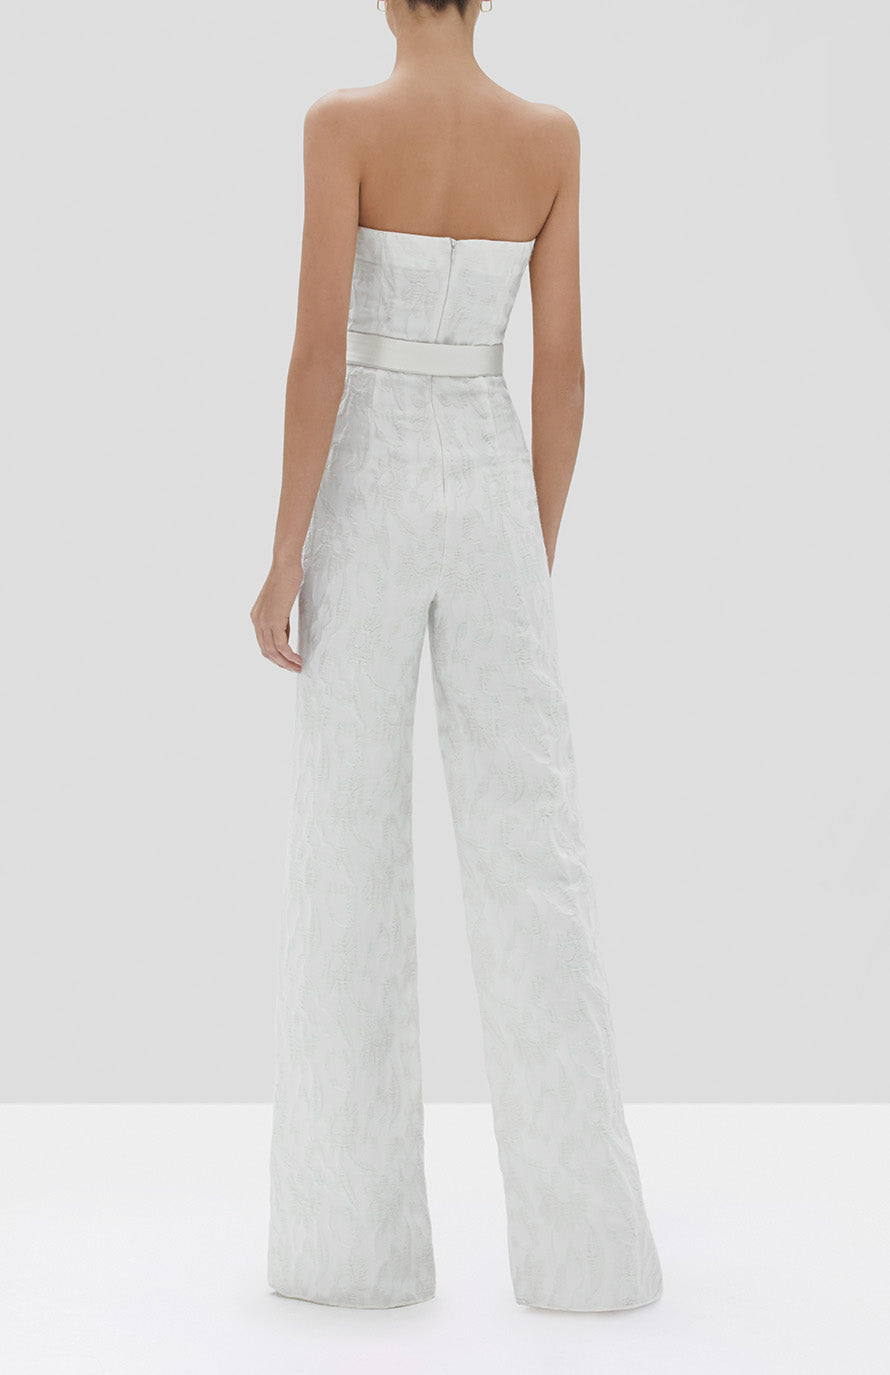 Alexis Venetia Jumpsuit in White Floral Jacquard from the Fall Winter 2019 Ready To Wear Collection - Rear View